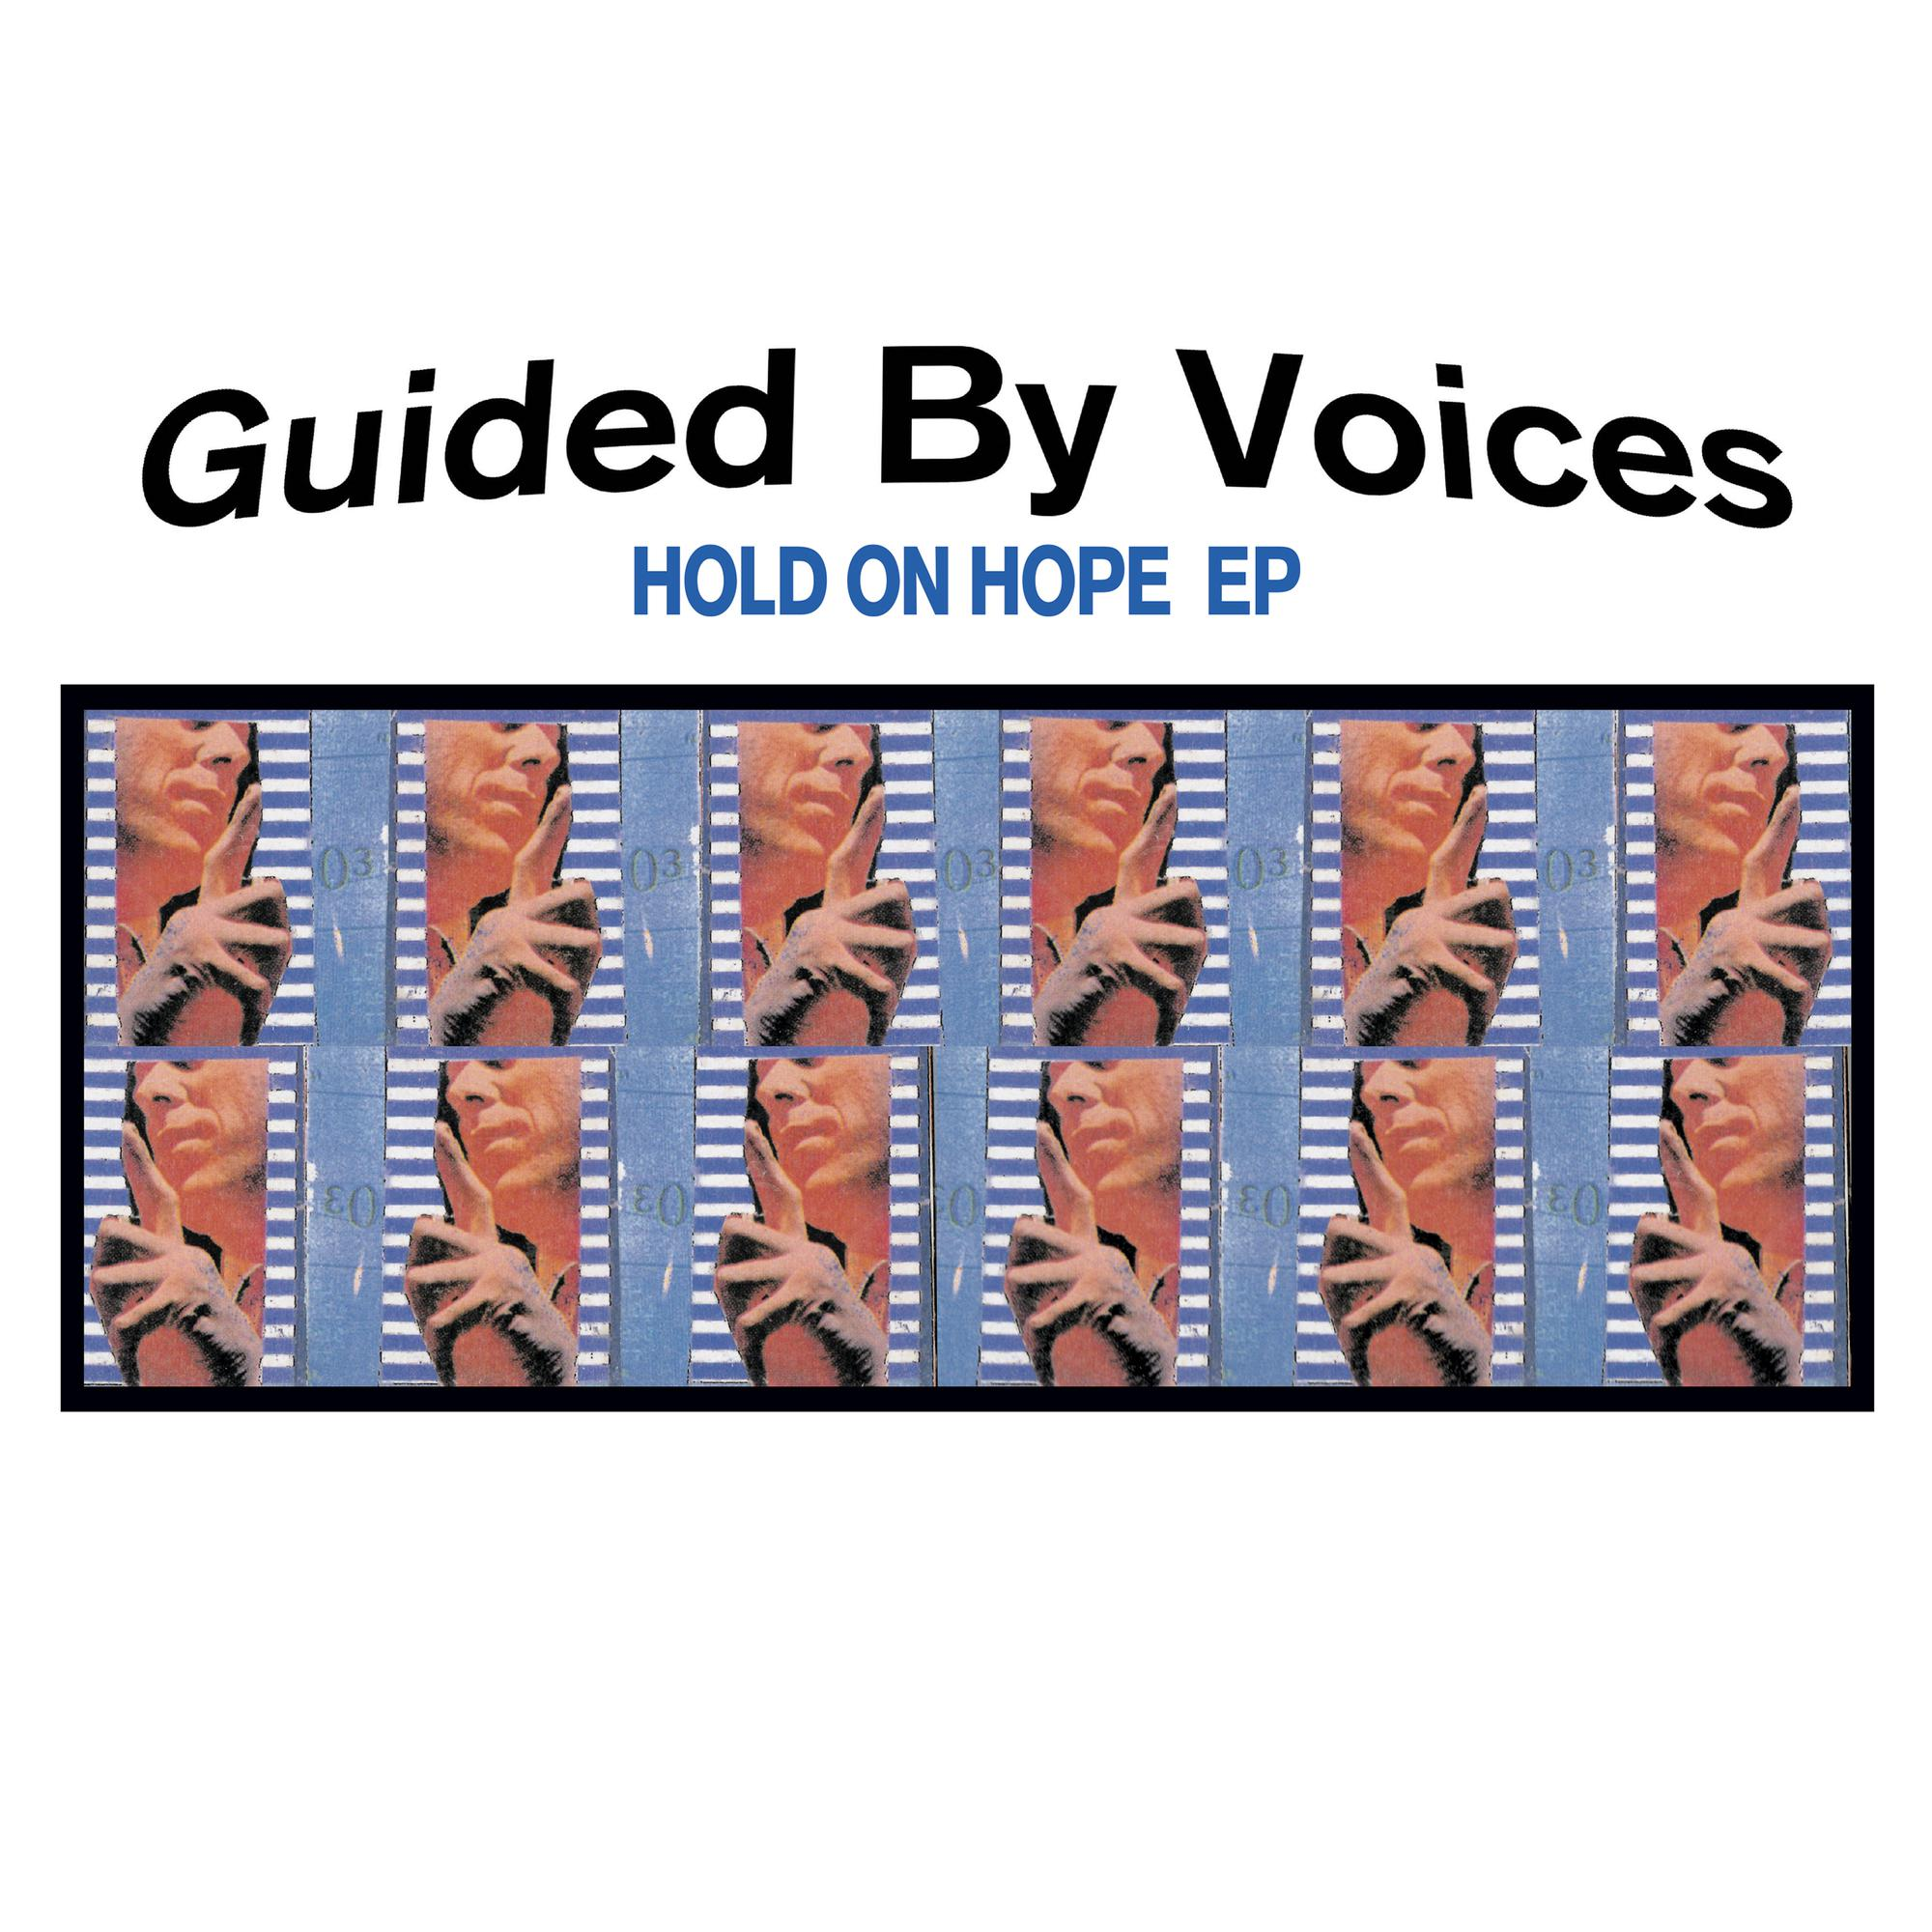 "Guided By Voices - Hold On Hope (RSD 2020 Drop One) Translucent Clear 10"" Vinyl Record"